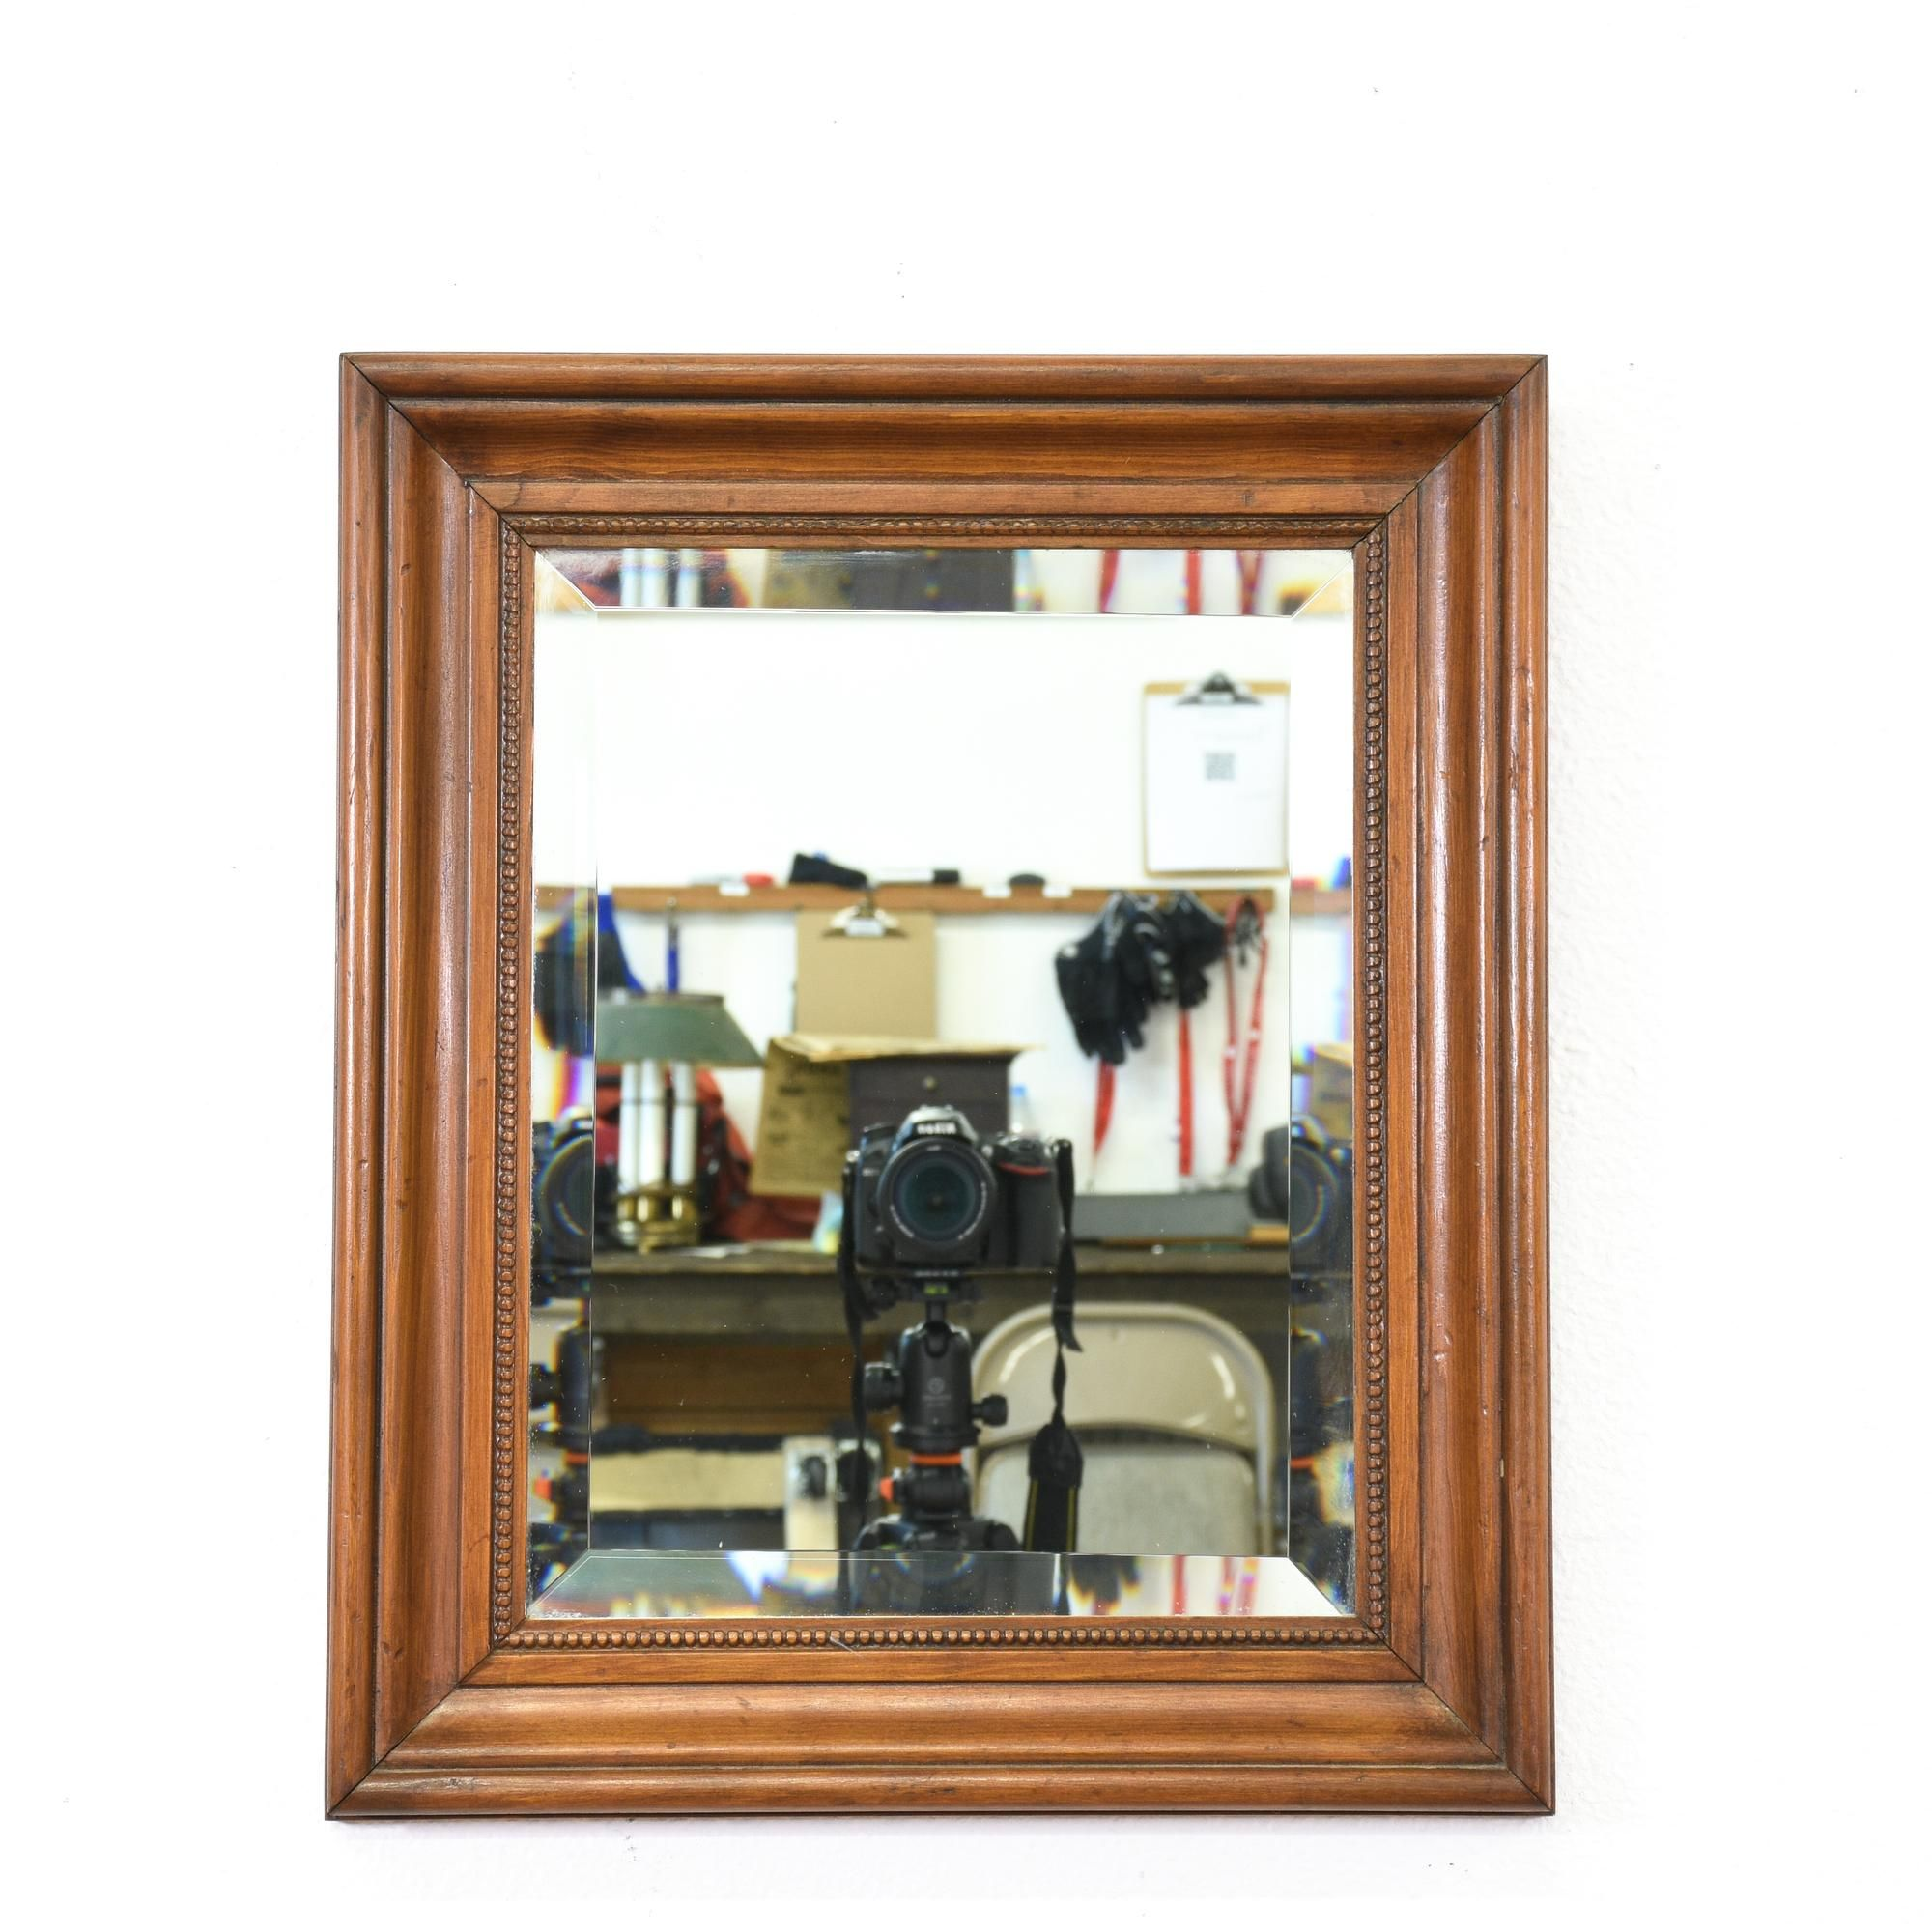 This framed mirror is featured in a solid wood with a ...